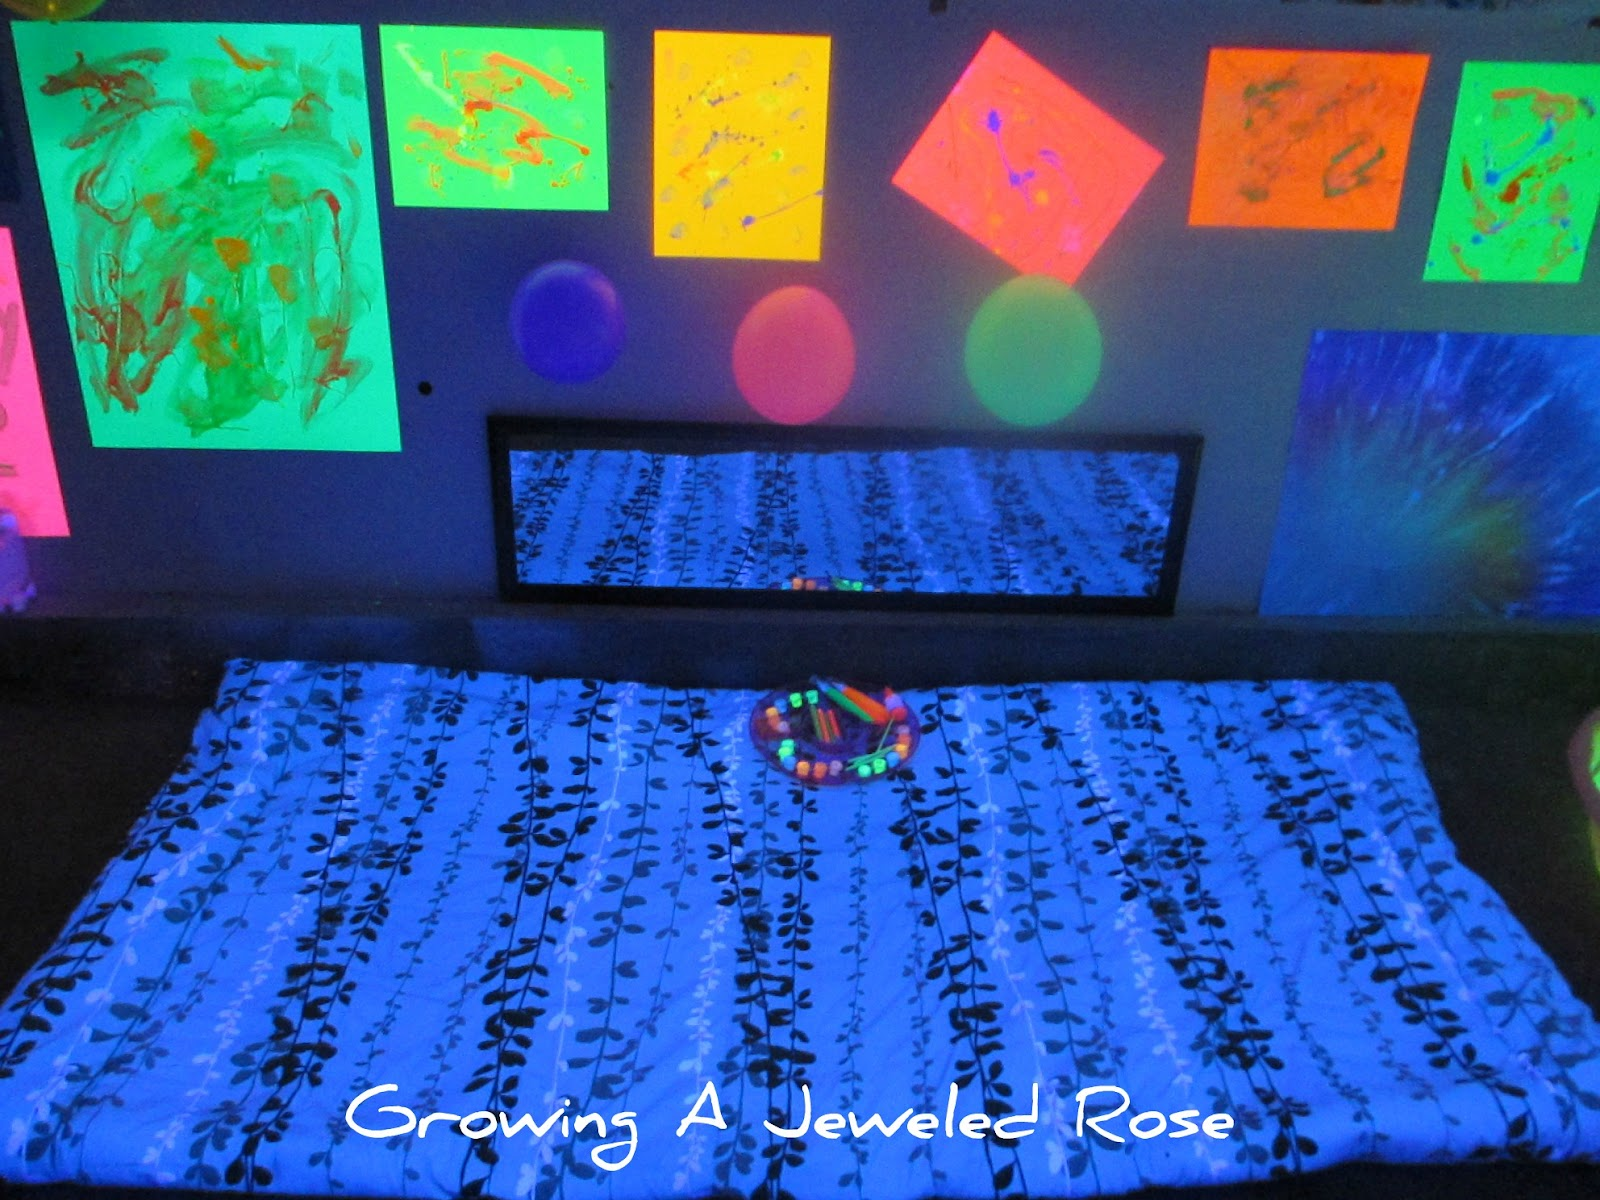 Black Light Themed Party for Kids | Growing A Jeweled Rose